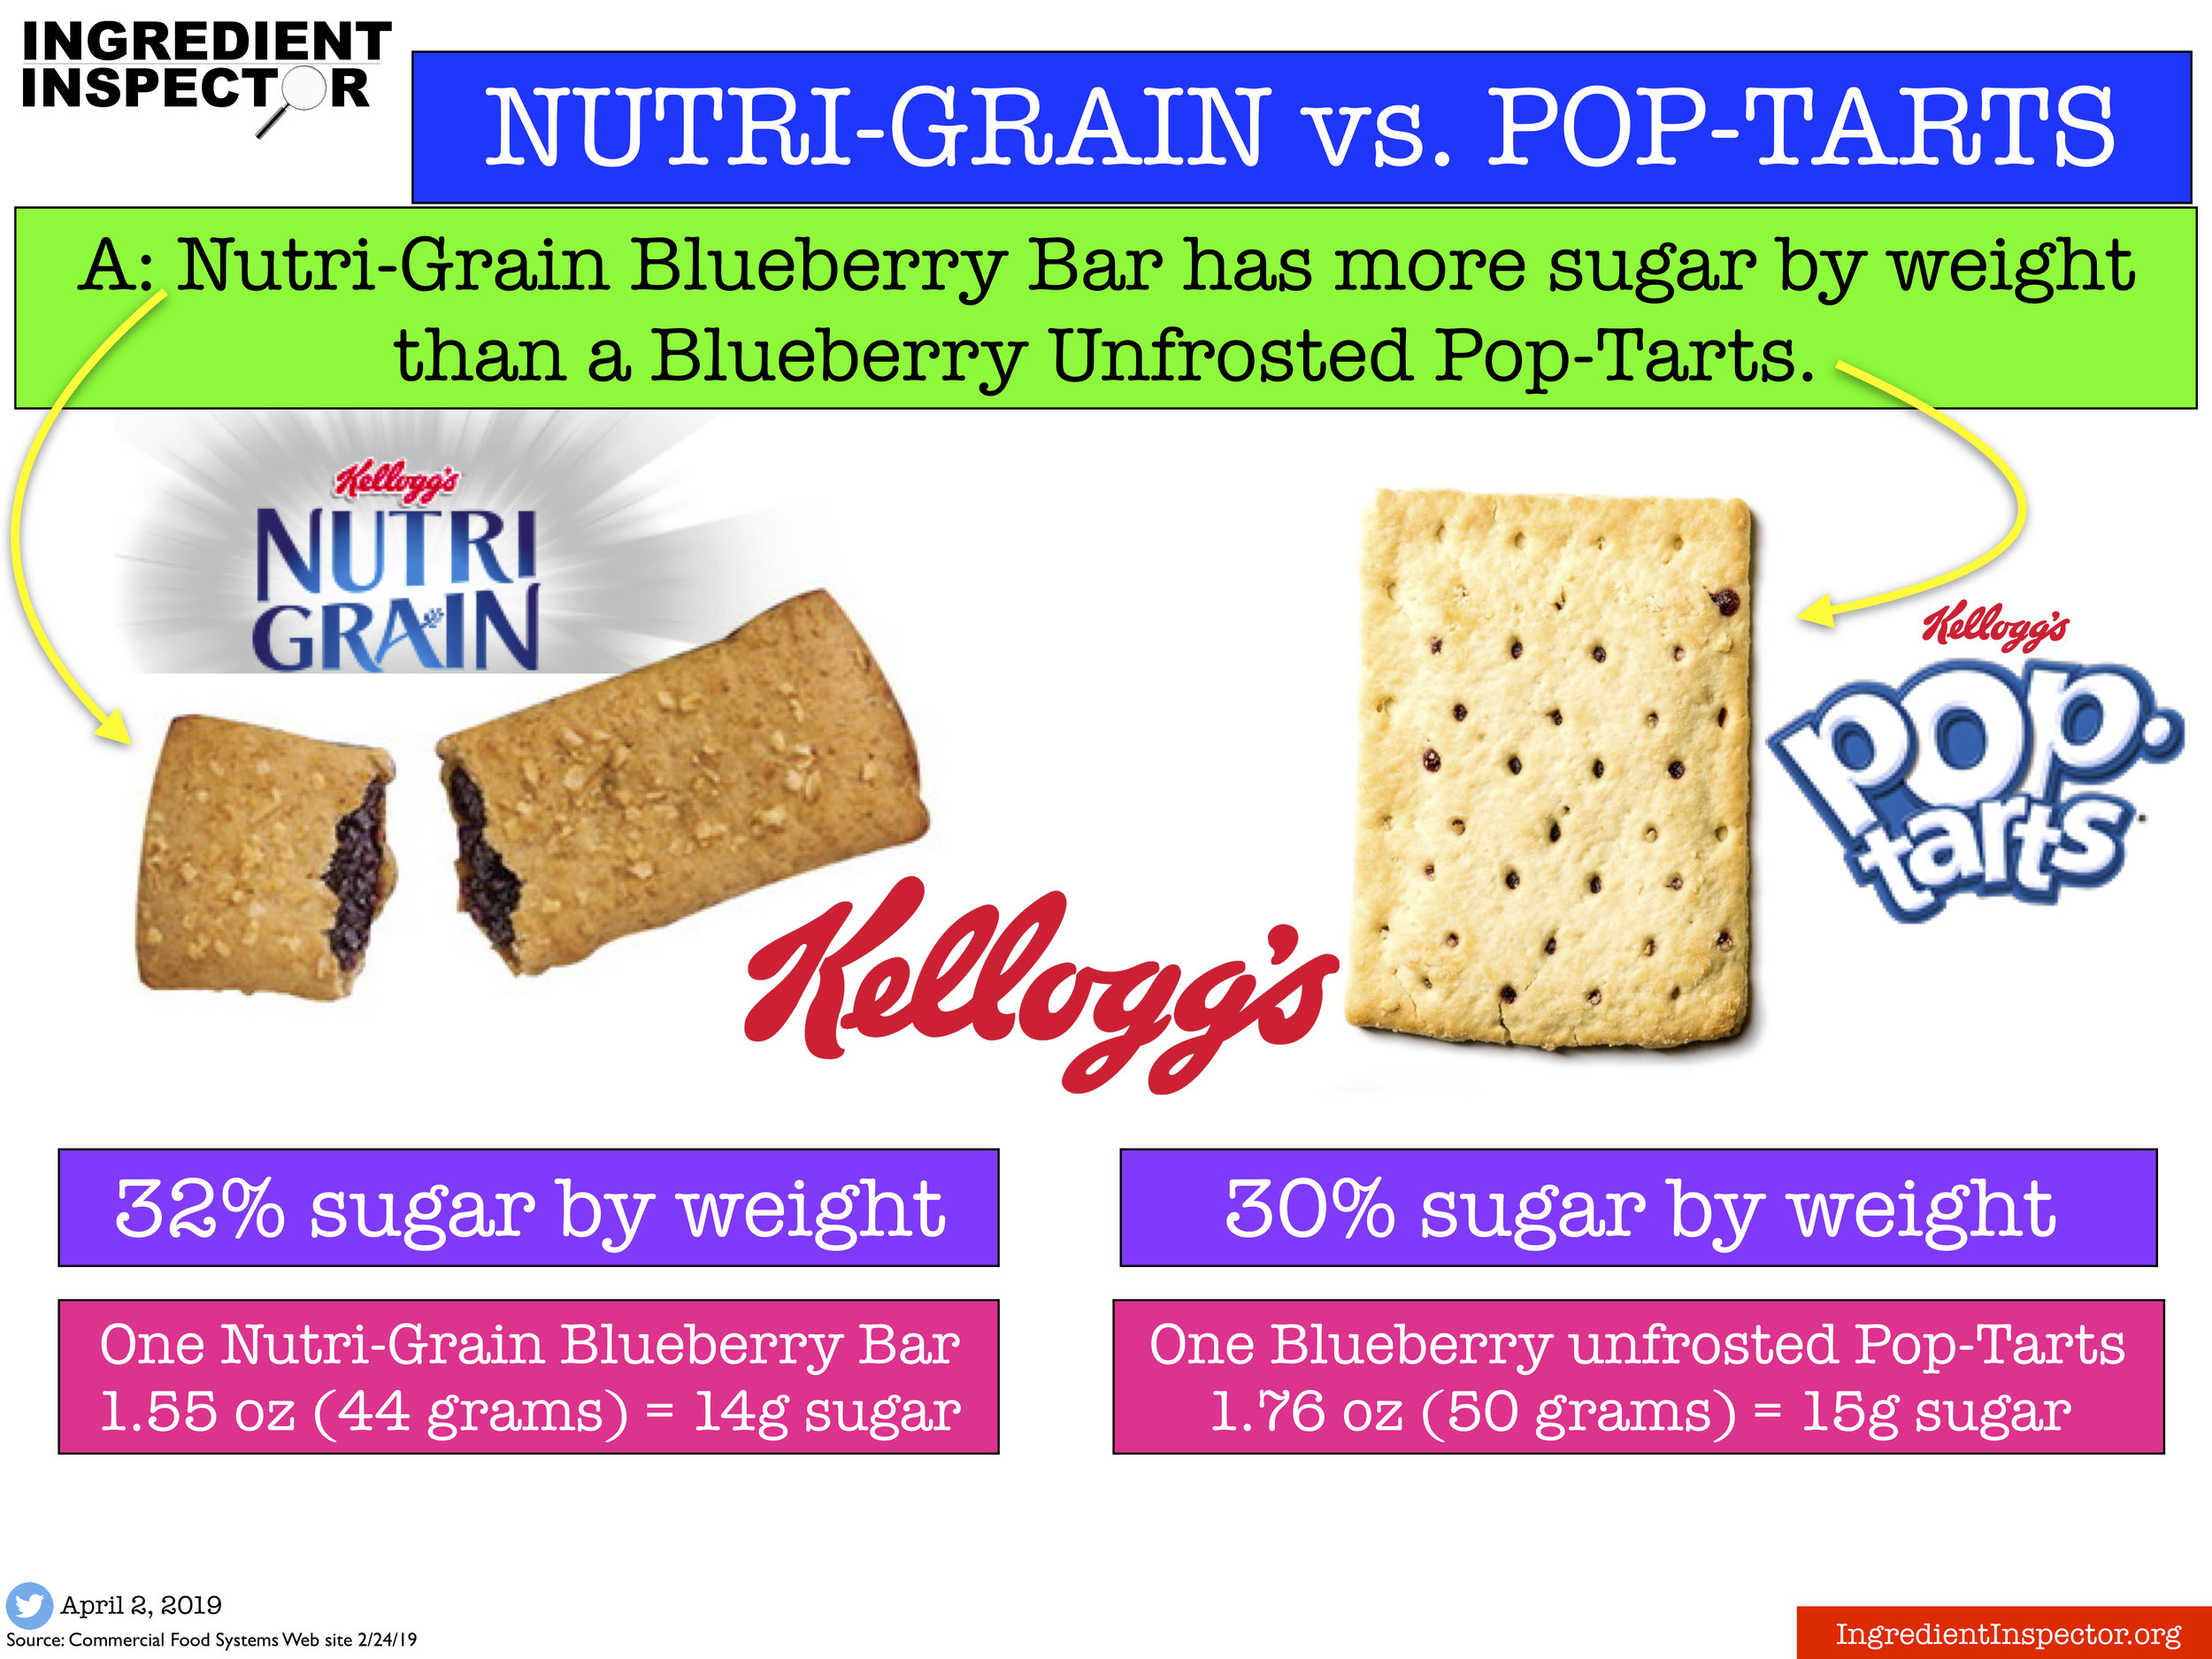 Ingredient Inspector Nutri-Grain Blueberry Bar has more sugar by weight than a Blueberry Unfrosted Pop-Tarts.jpg